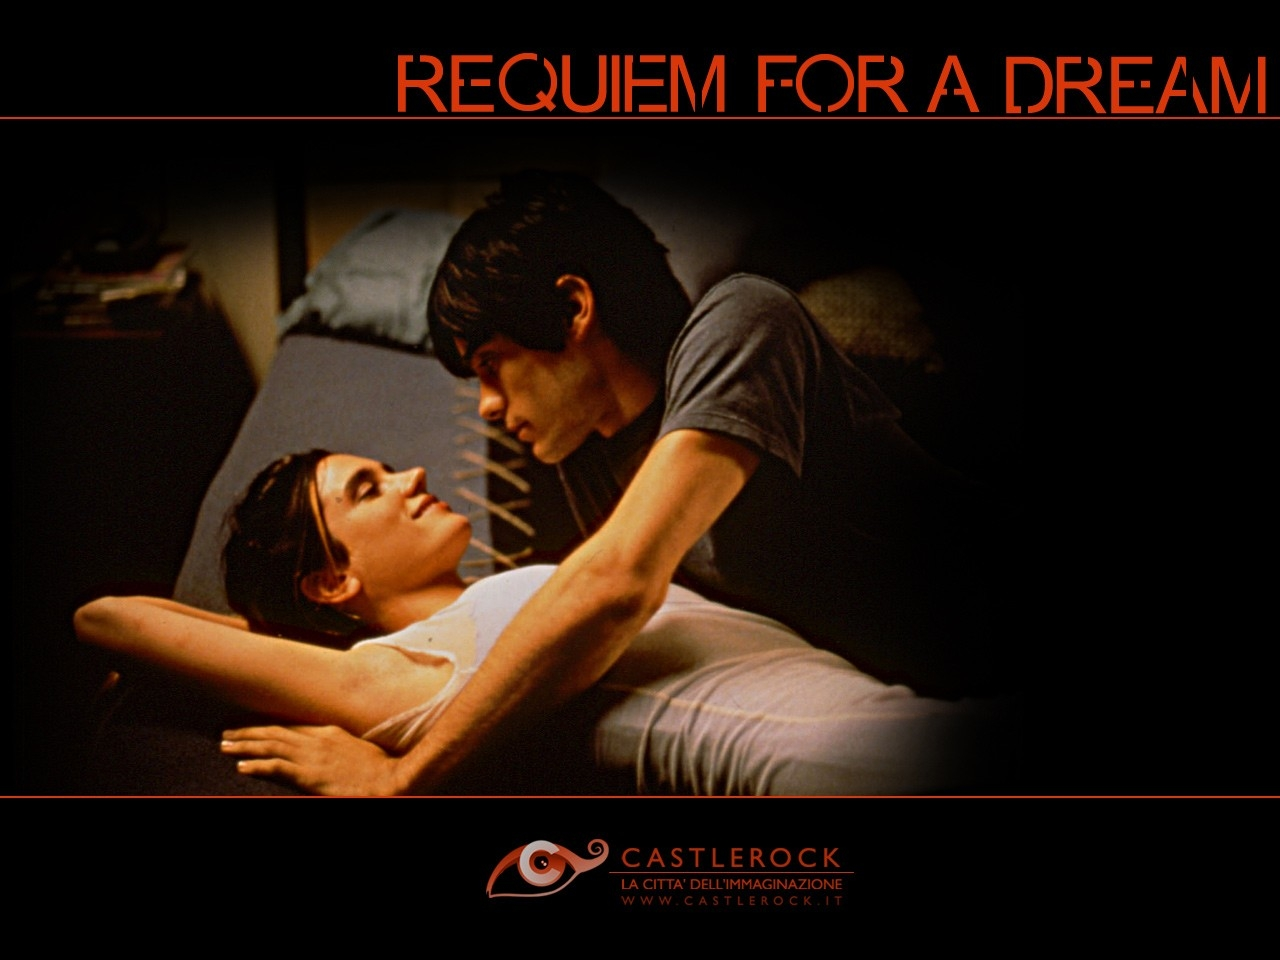 Wallpaper del film Requiem for a Dream